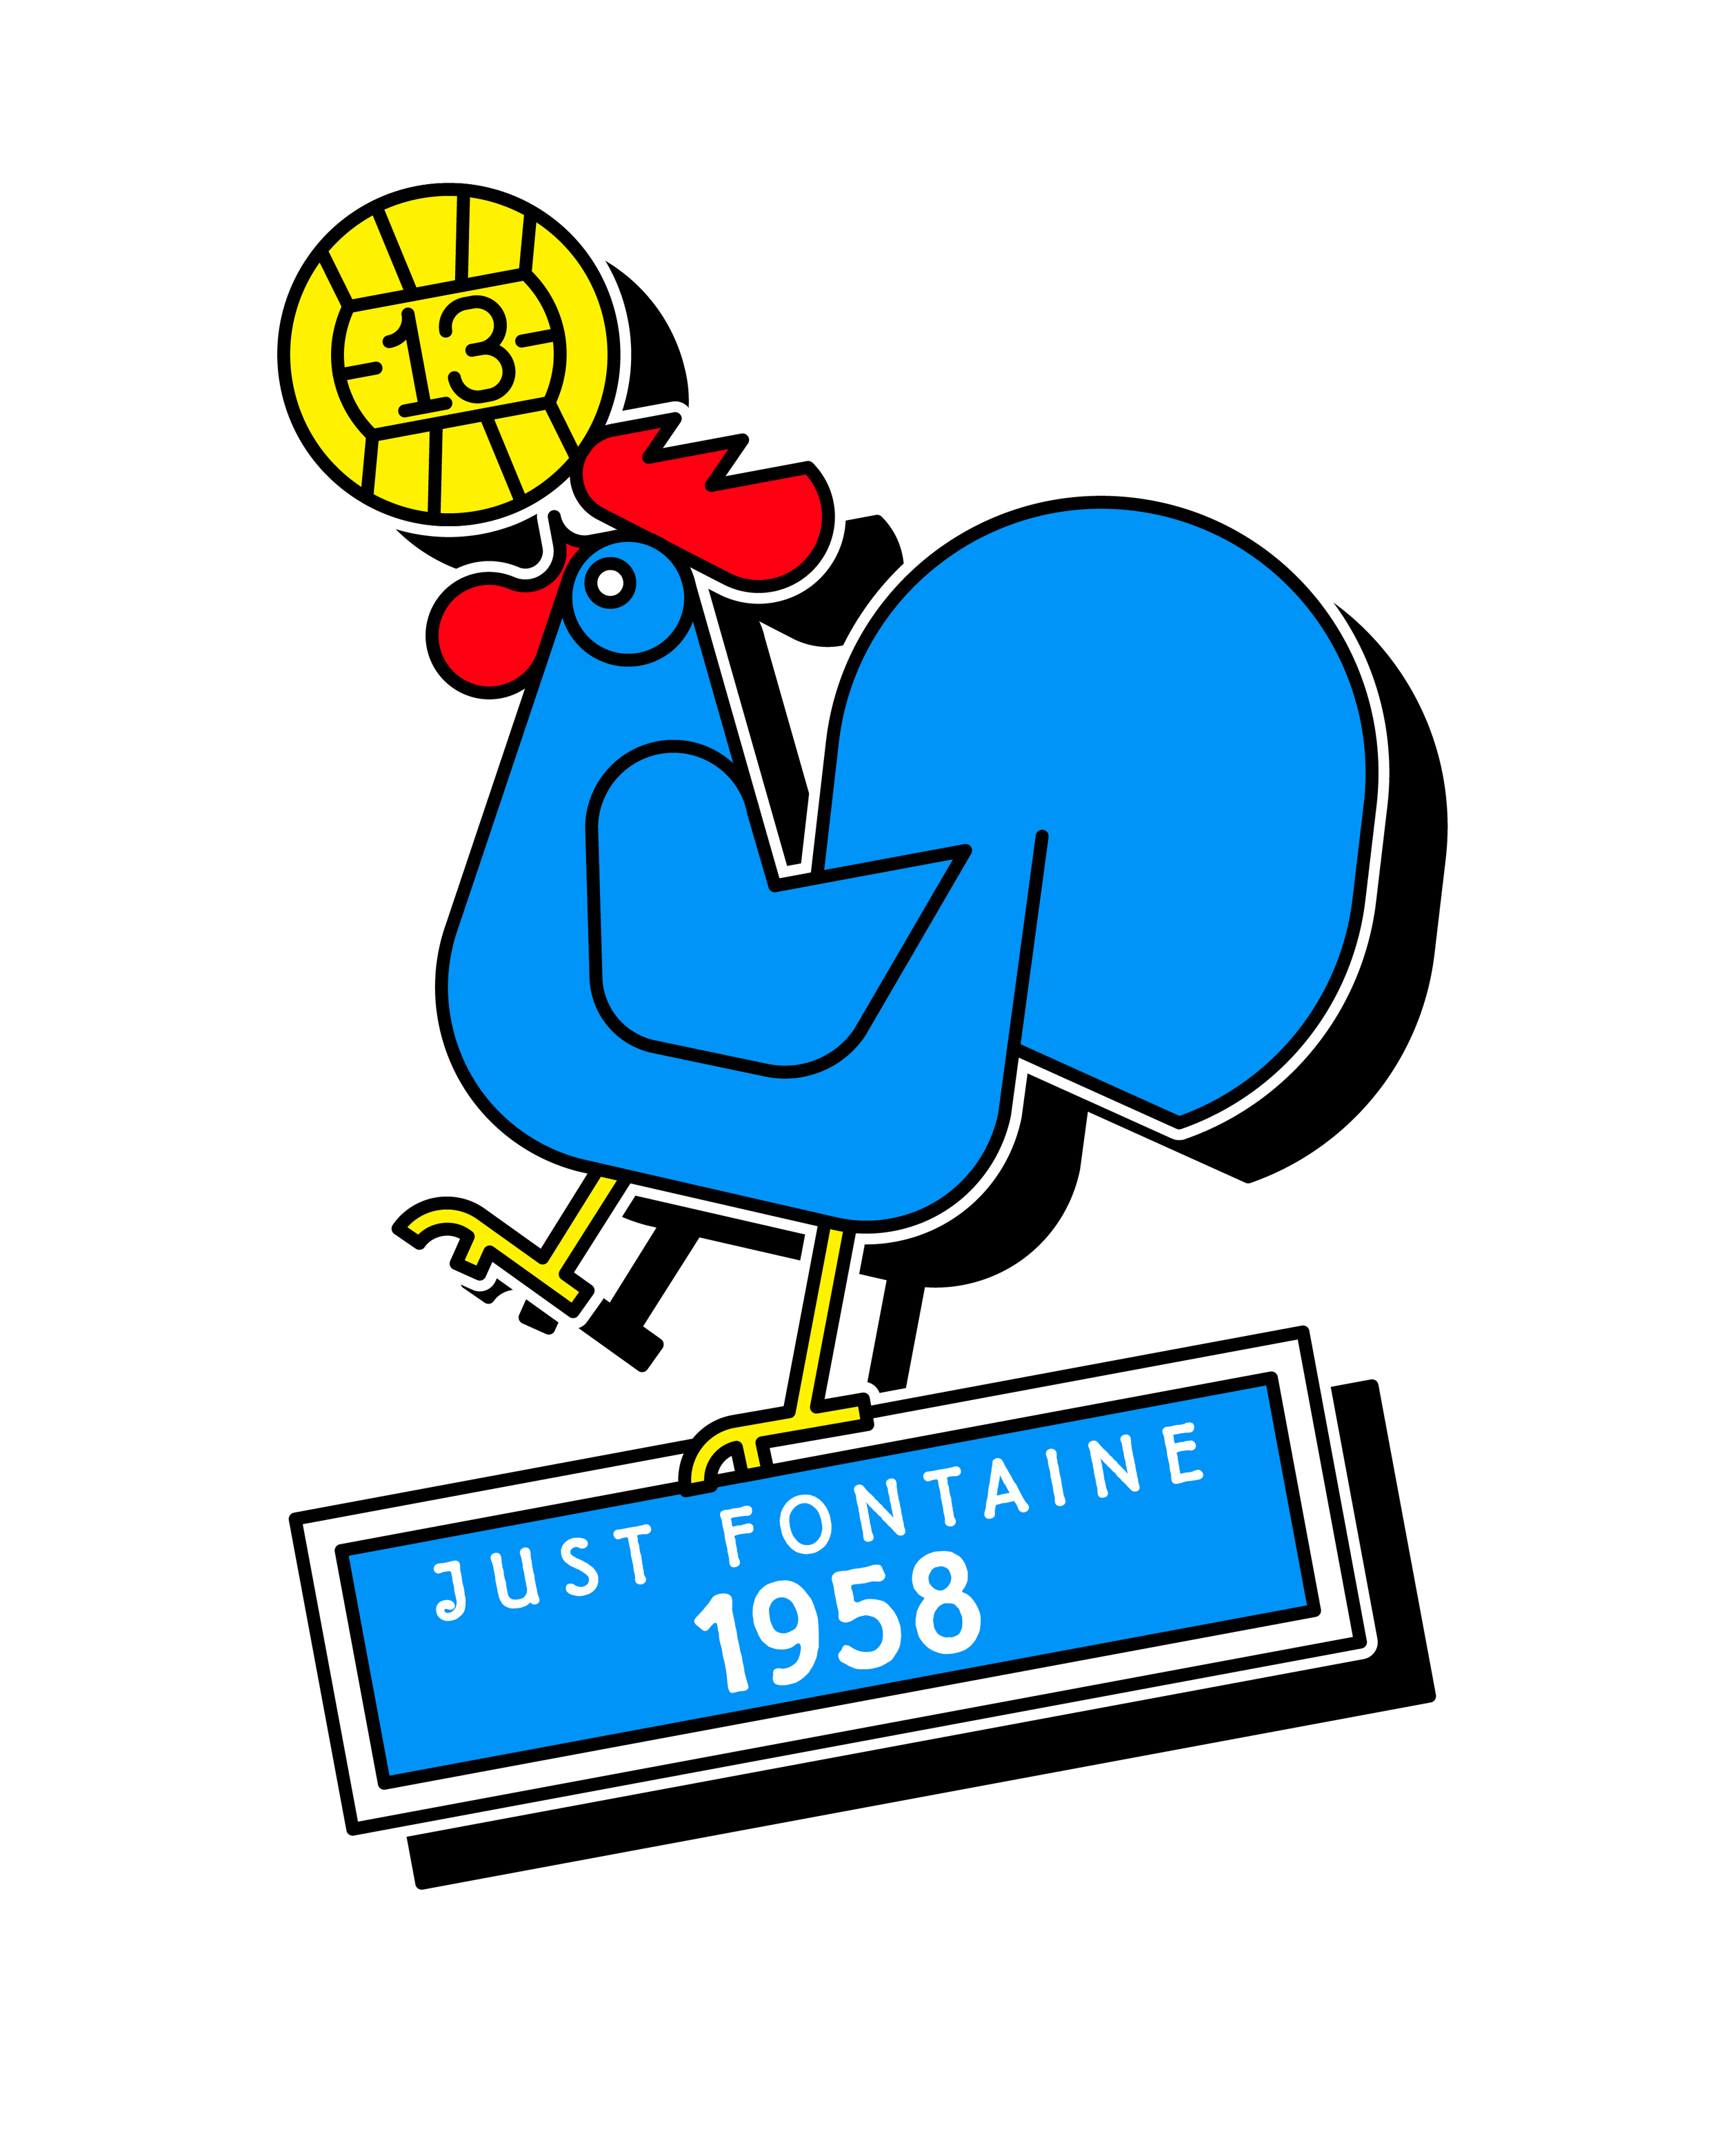 1958 - France's striker Just Fontaine scored 13 goals in this tournament and to this day holds the record for most goals scored by an individual player in a single tournament. Fontaine managed the feat by scoring in all of France's six matches.